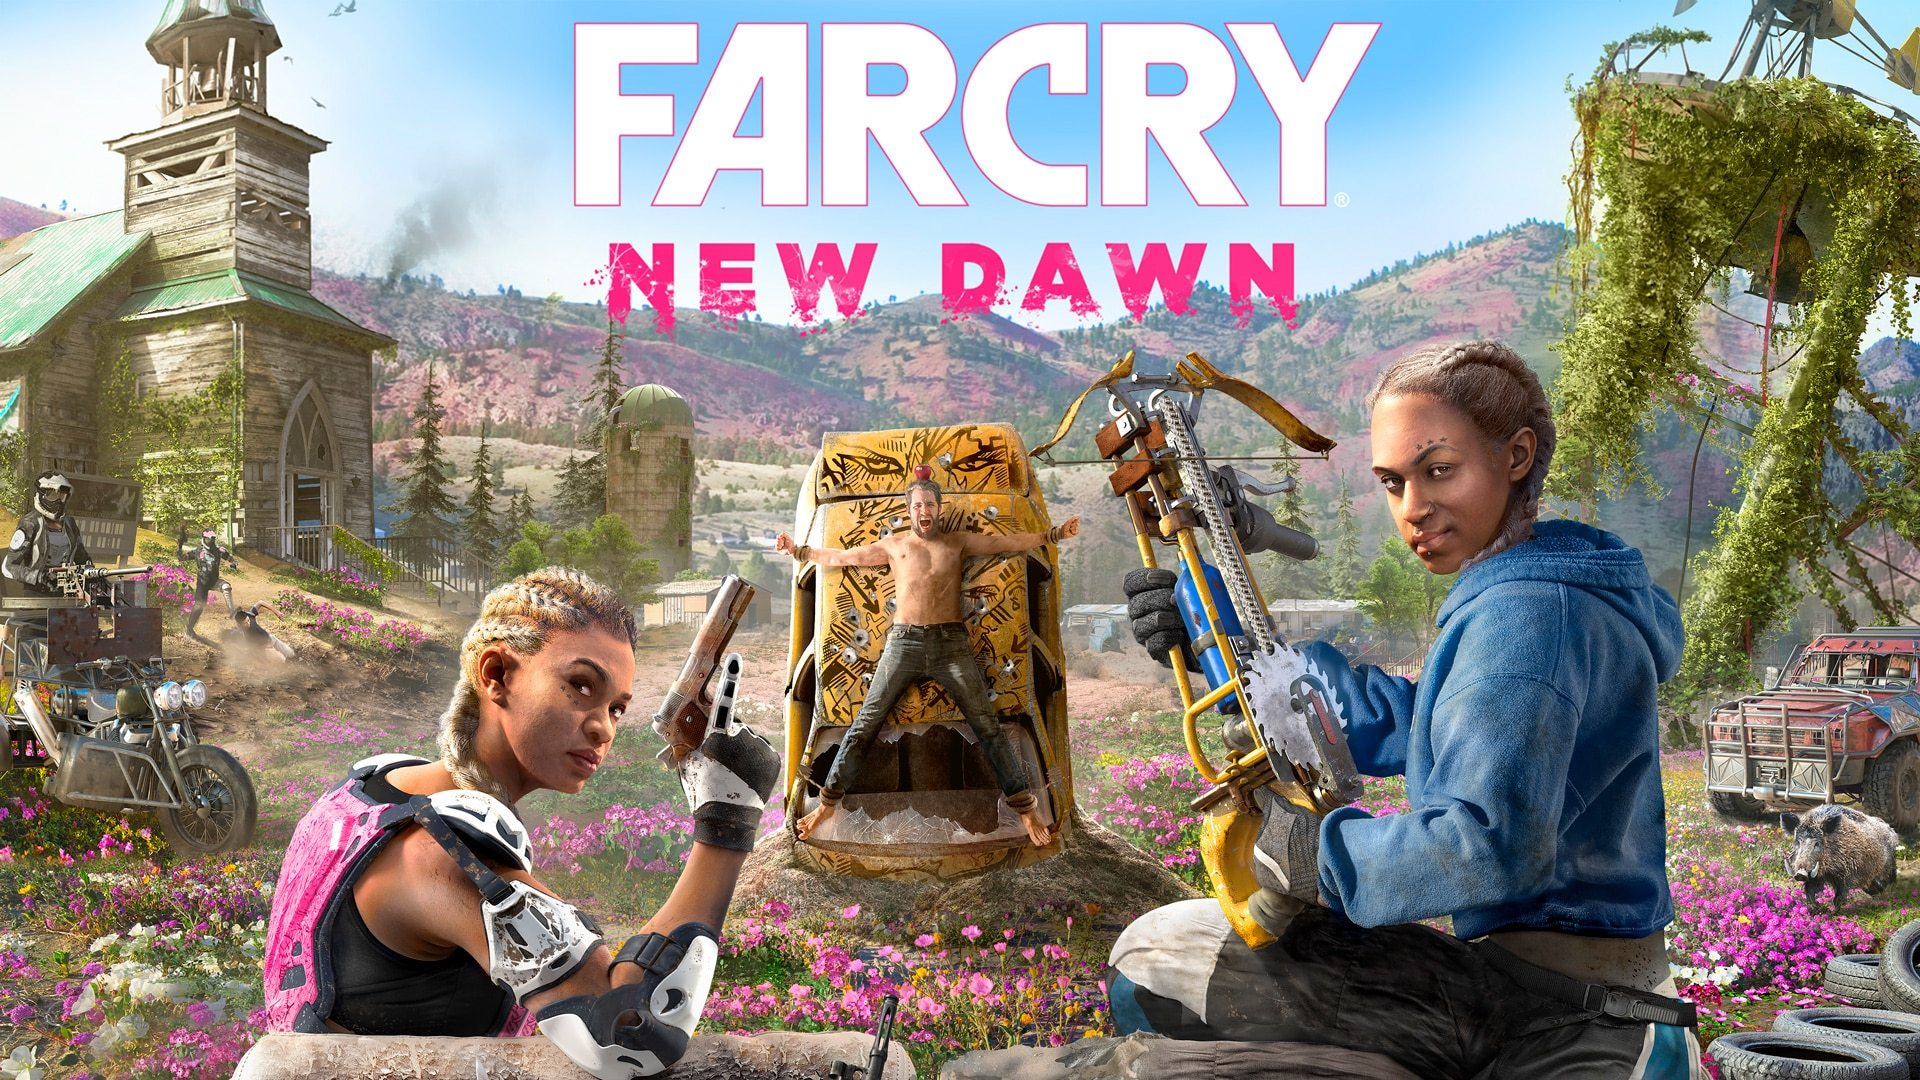 [FPS Benchmarks] Far Cry New Dawn on NVIDIA GeForce GTX 1650 [40W and 50W] – the bigger sibling runs with 60 FPS on Ultra